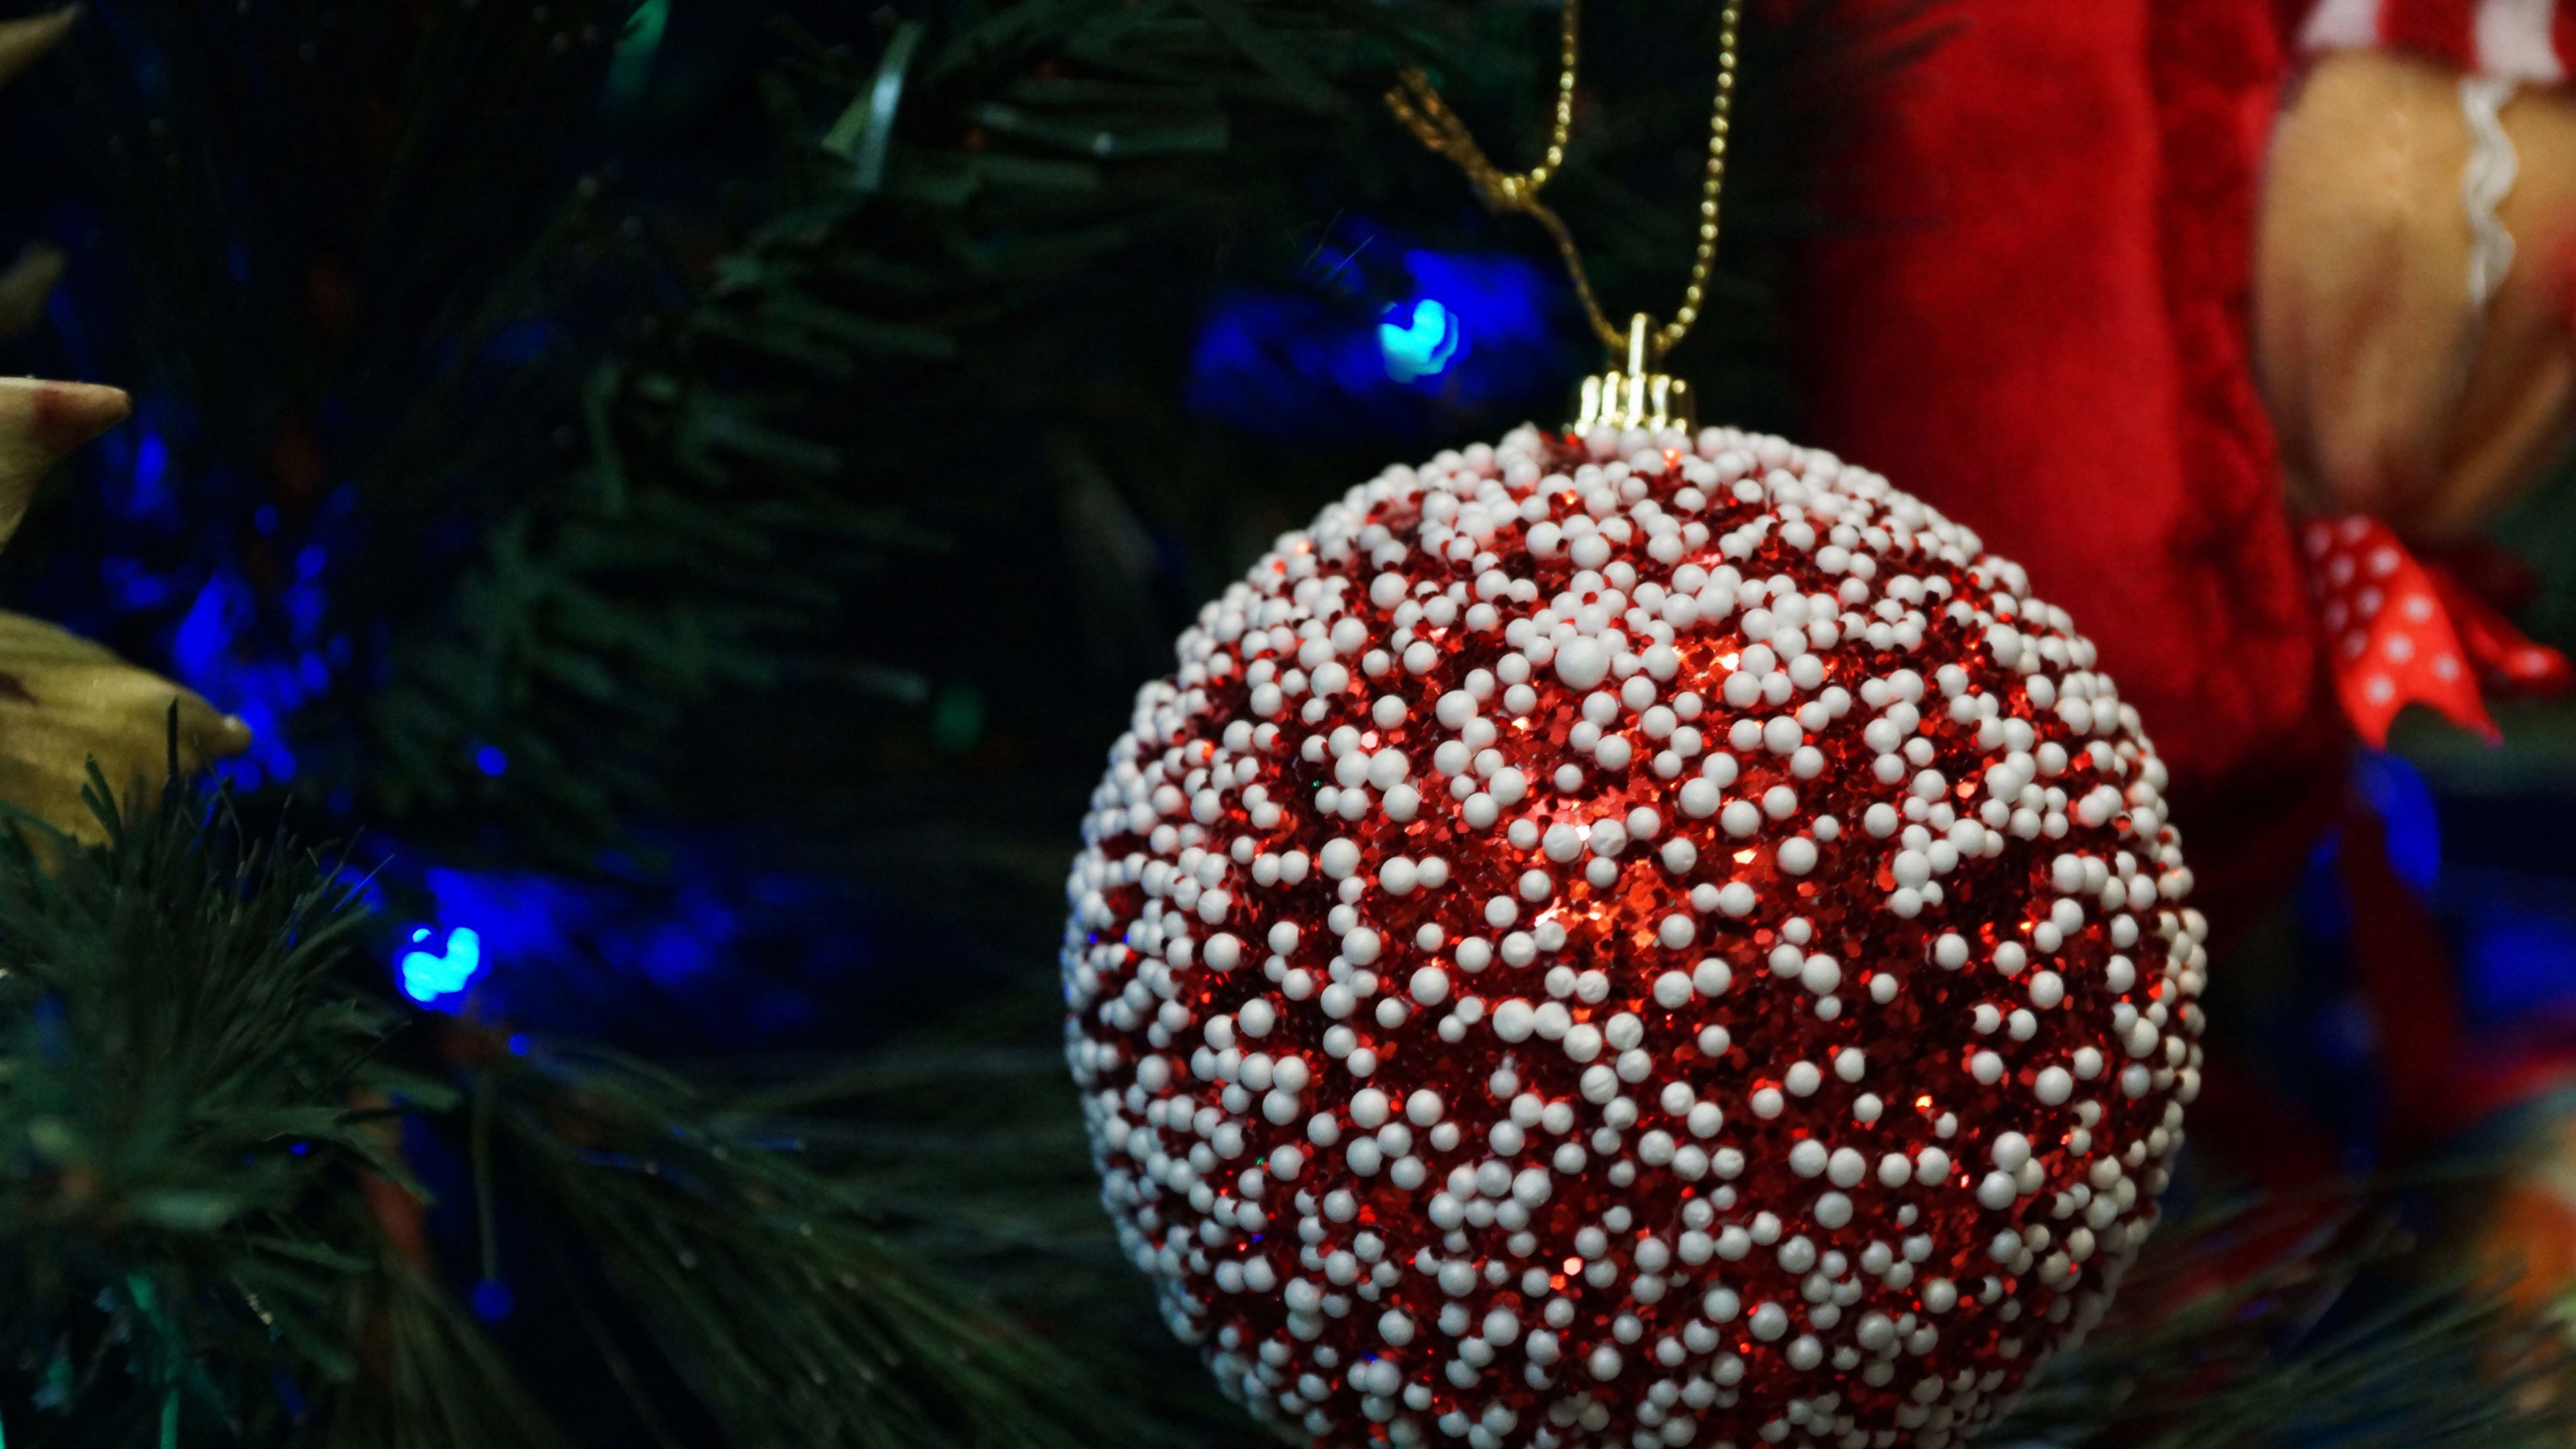 Wallpaper Red Christmas Ball Close Up White Decoration 3840x2160